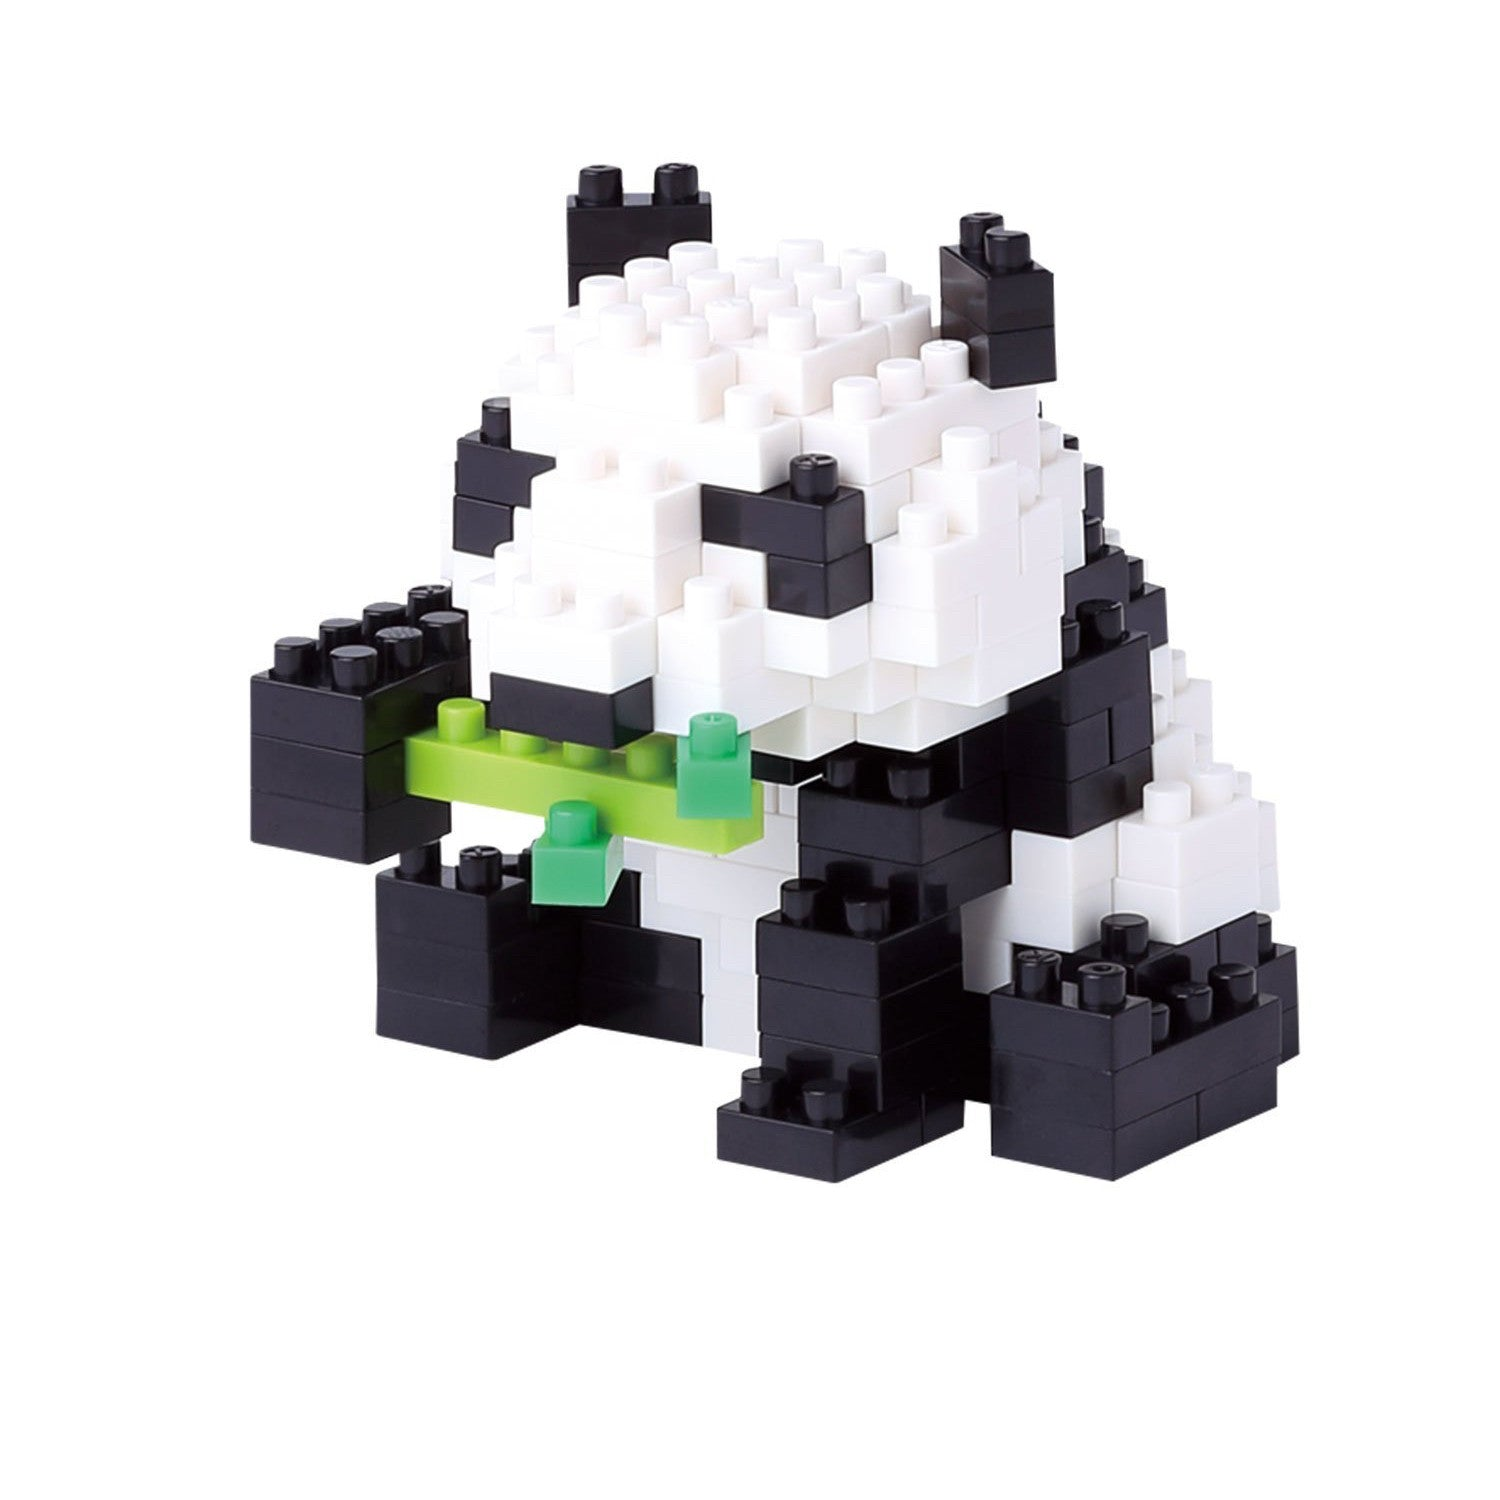 Kawada NBC_159 Nanoblock Giant Panda Renewal Building Kit